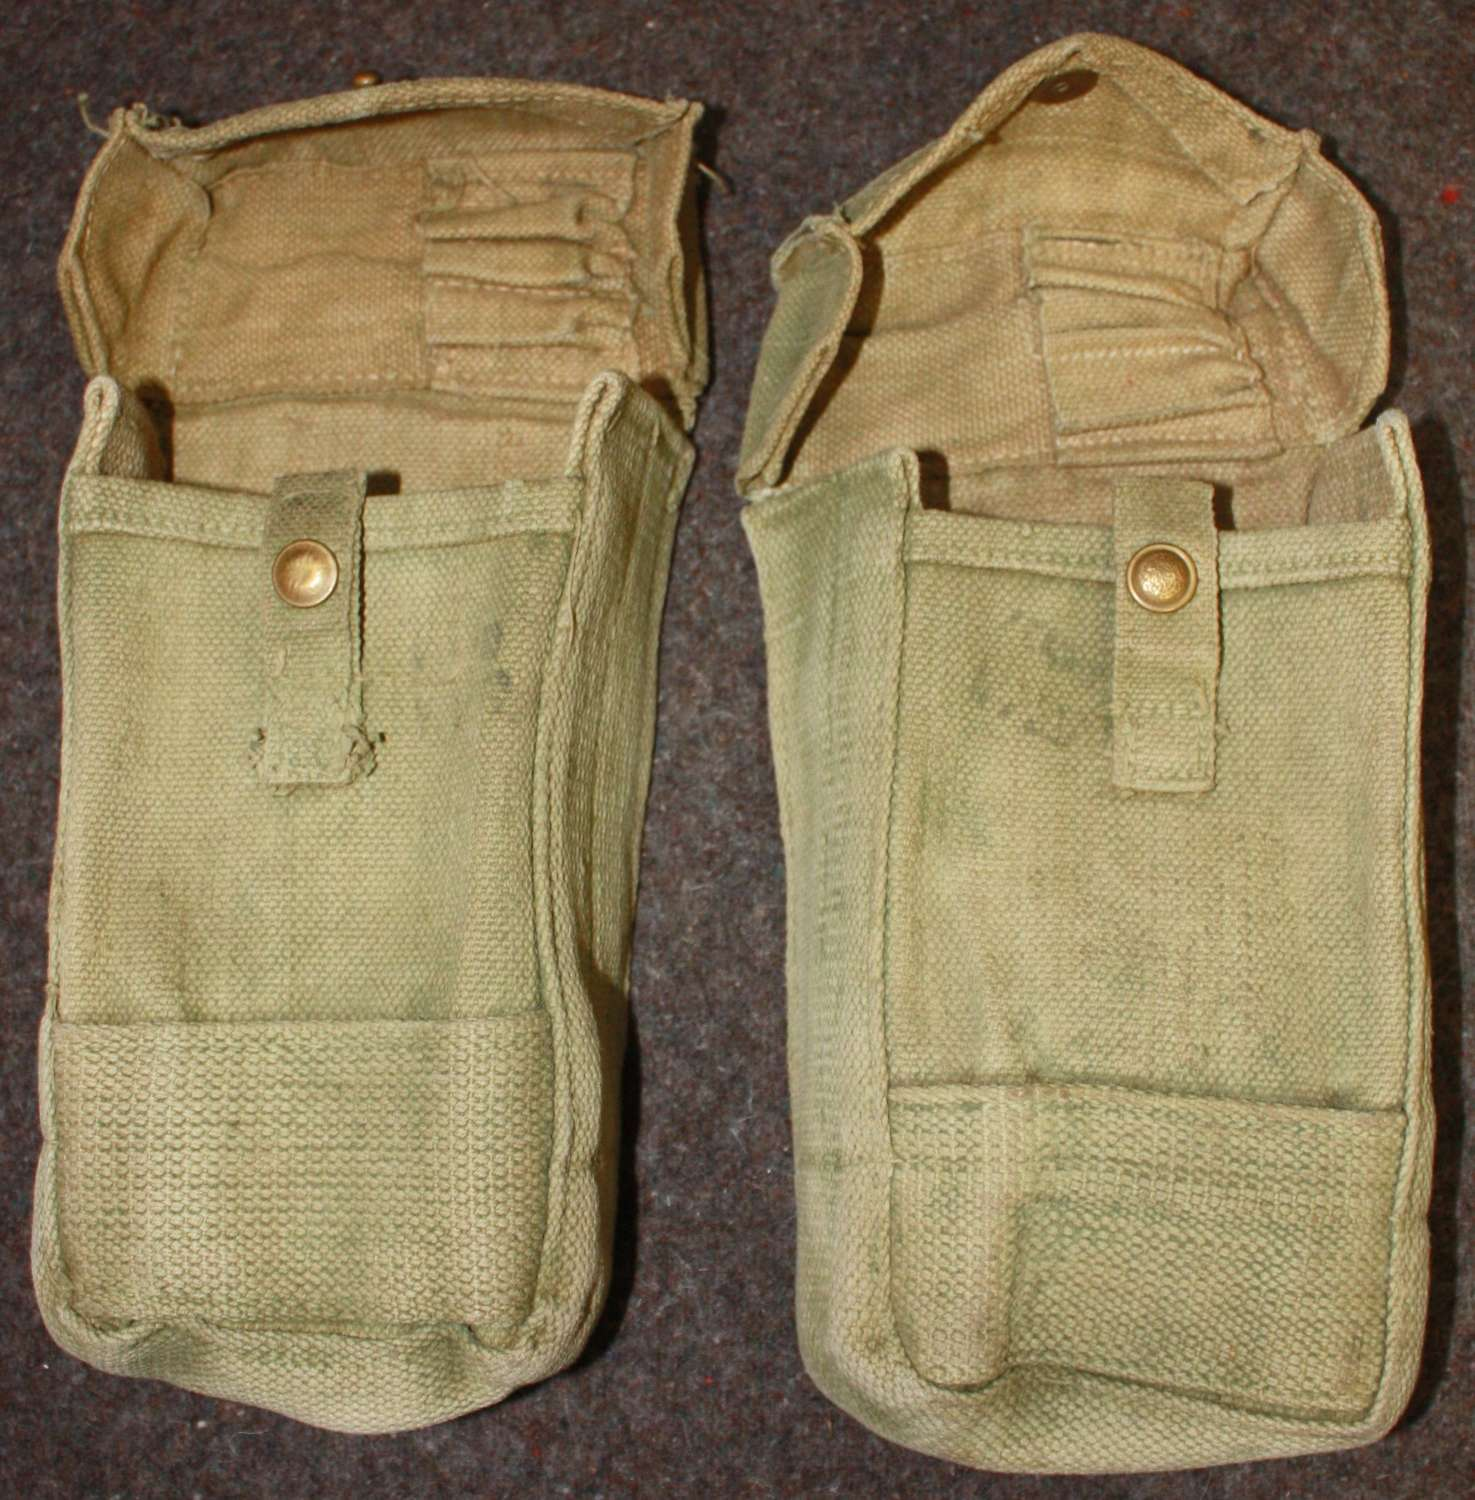 A NICE PAIR OF INDIAN 37 PATTERN AMMO POUCHES